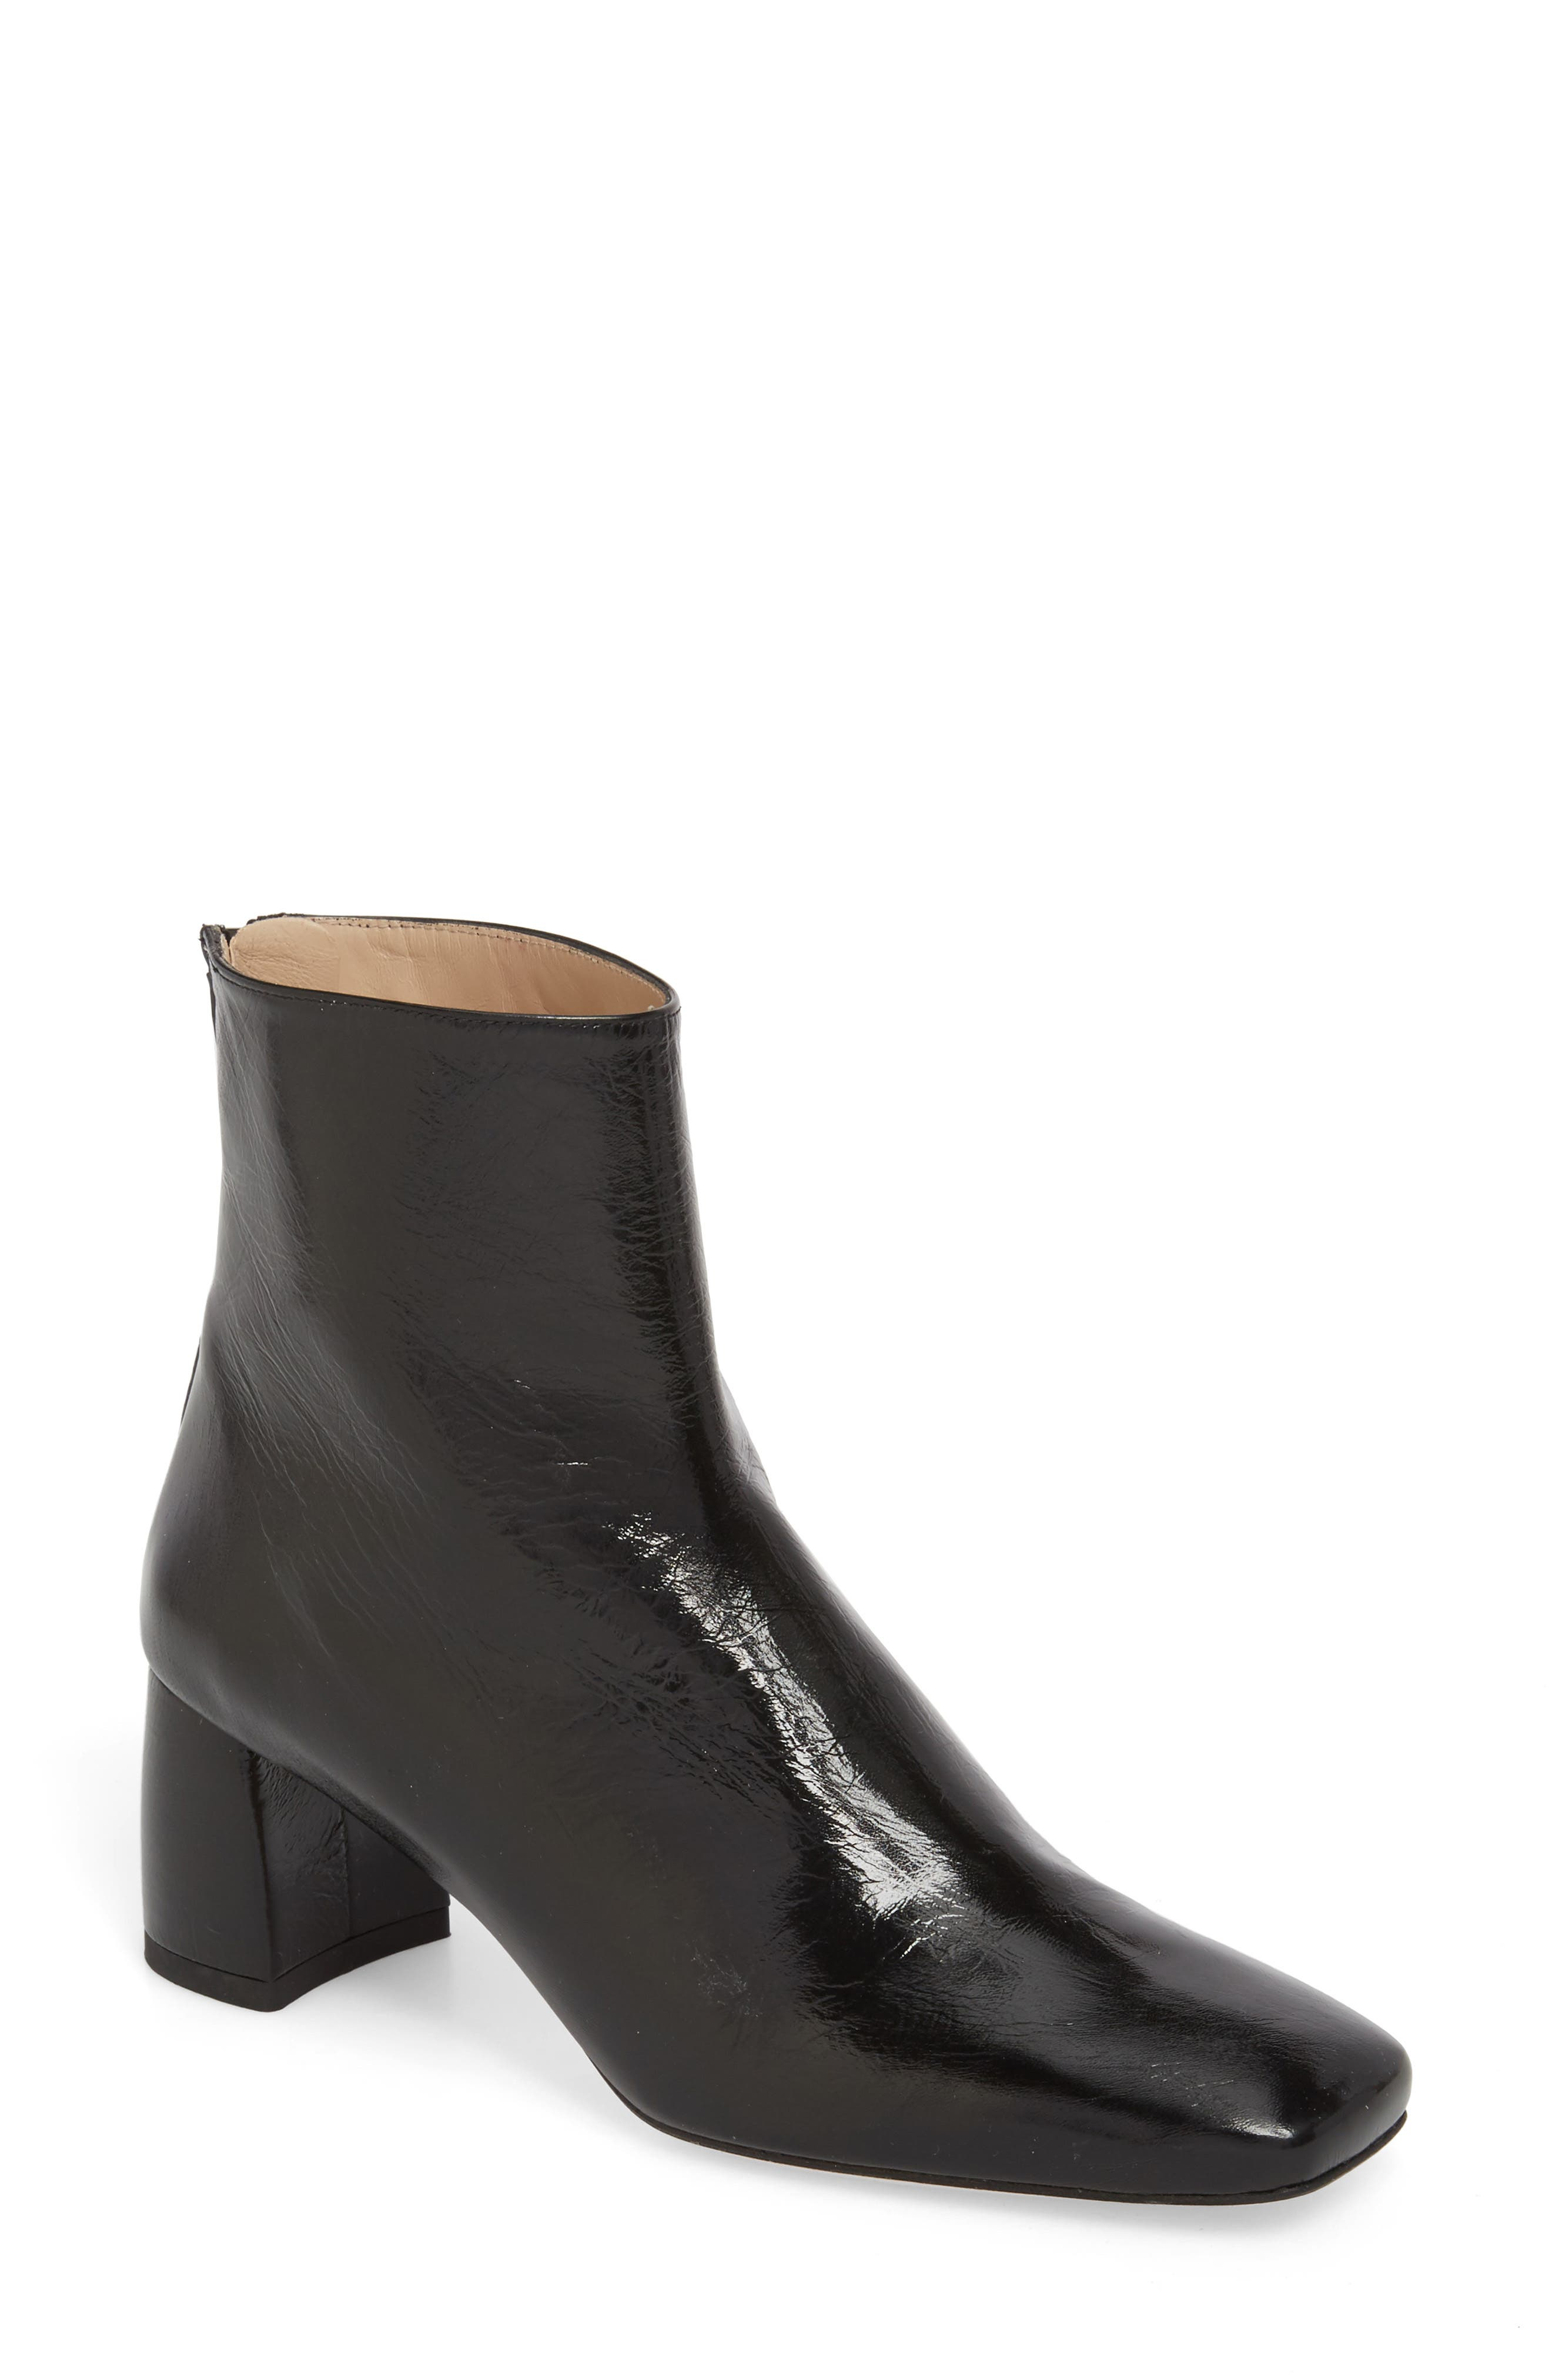 Eager Flared Heel Bootie,                         Main,                         color, 001